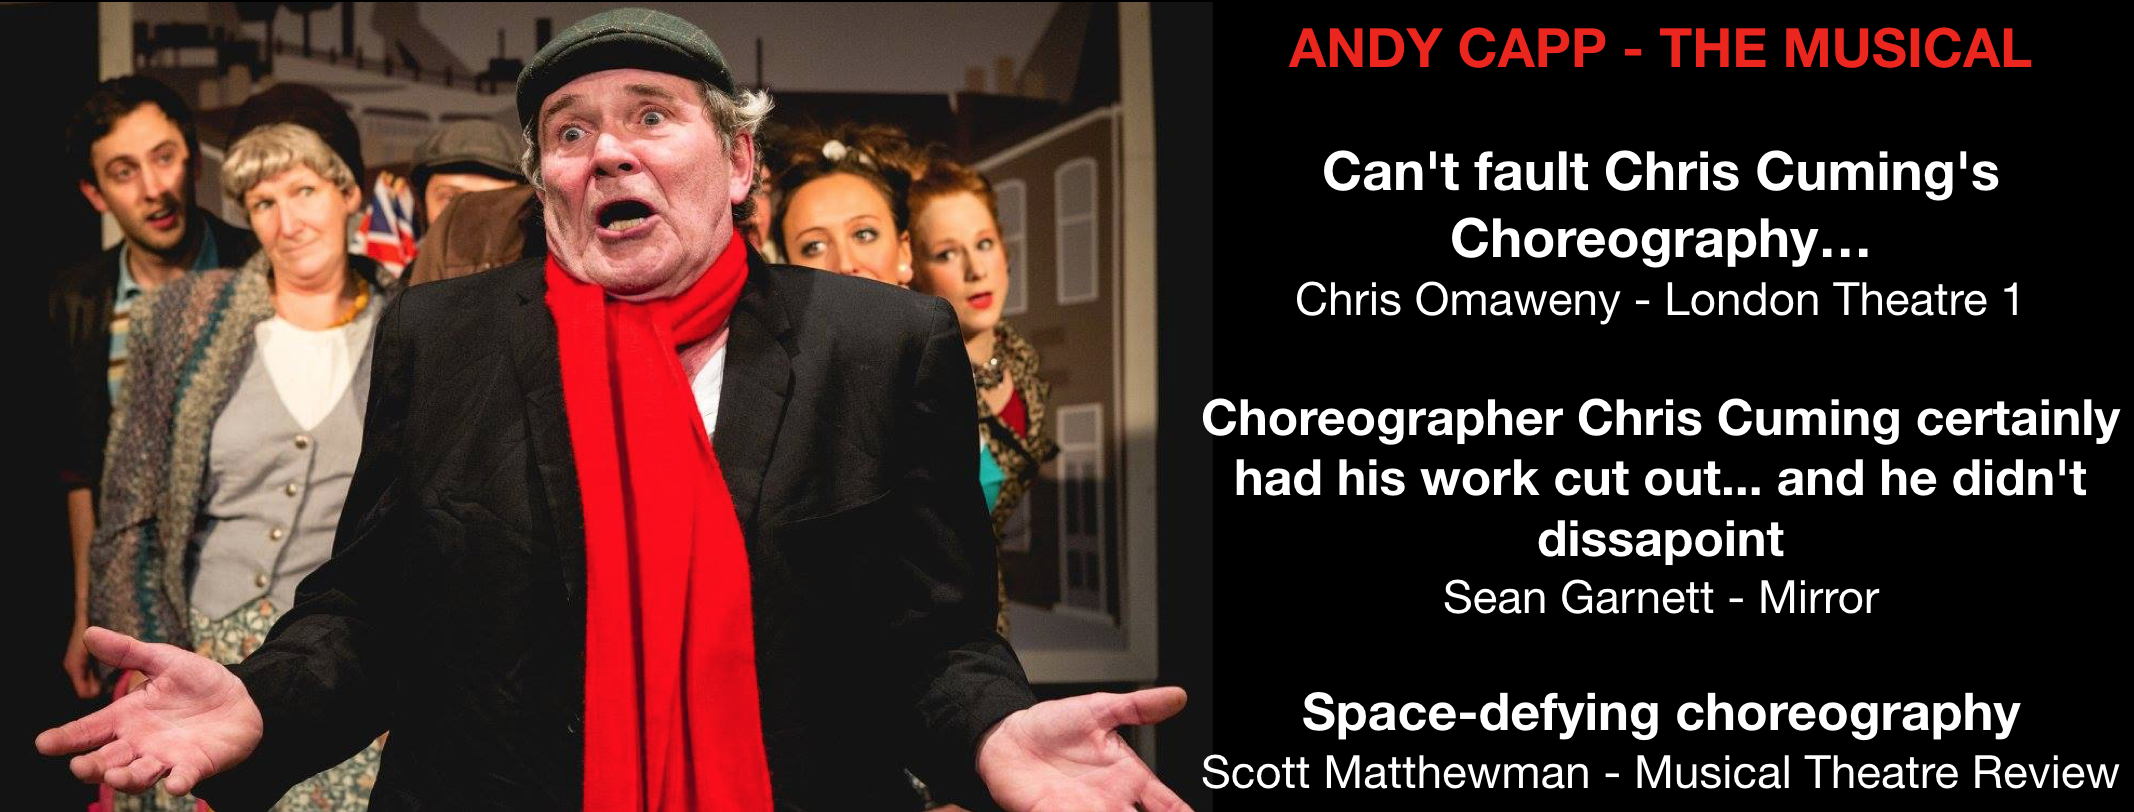 Andy Capp - Reviews